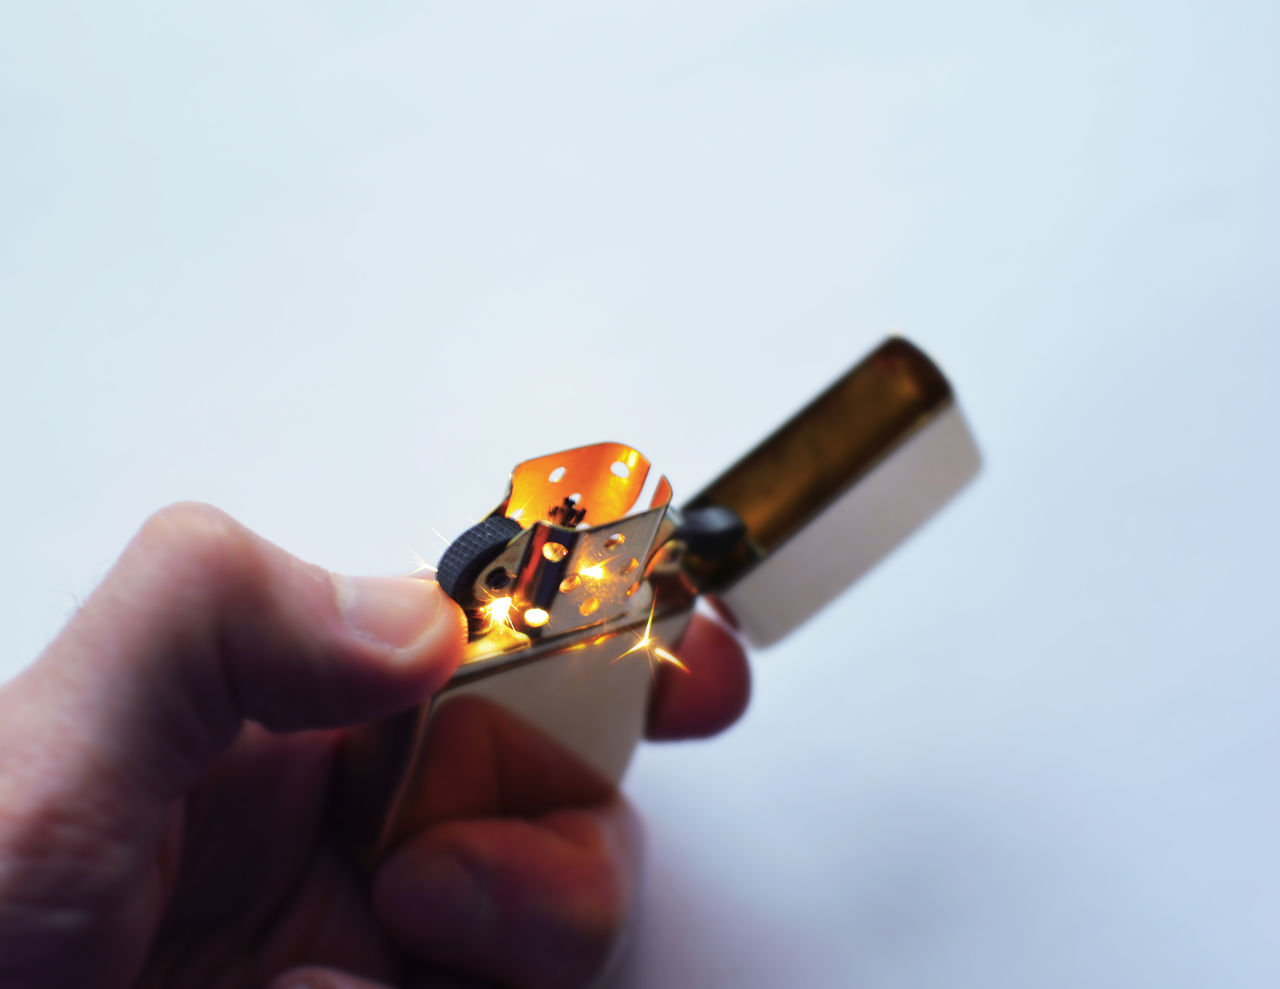 A classic Zippo lighter sparking to life. American Burn Classic Close Up EyeEmNewHere Glow Holding Holding Zippo Human Hand Iconic Iconic Design Indoors  Lighter Lighter Flame Lit Luxury Macro Orange Smoker Spark Studio Shot Traditional Lighter White Background Zippo Zippo Lighter